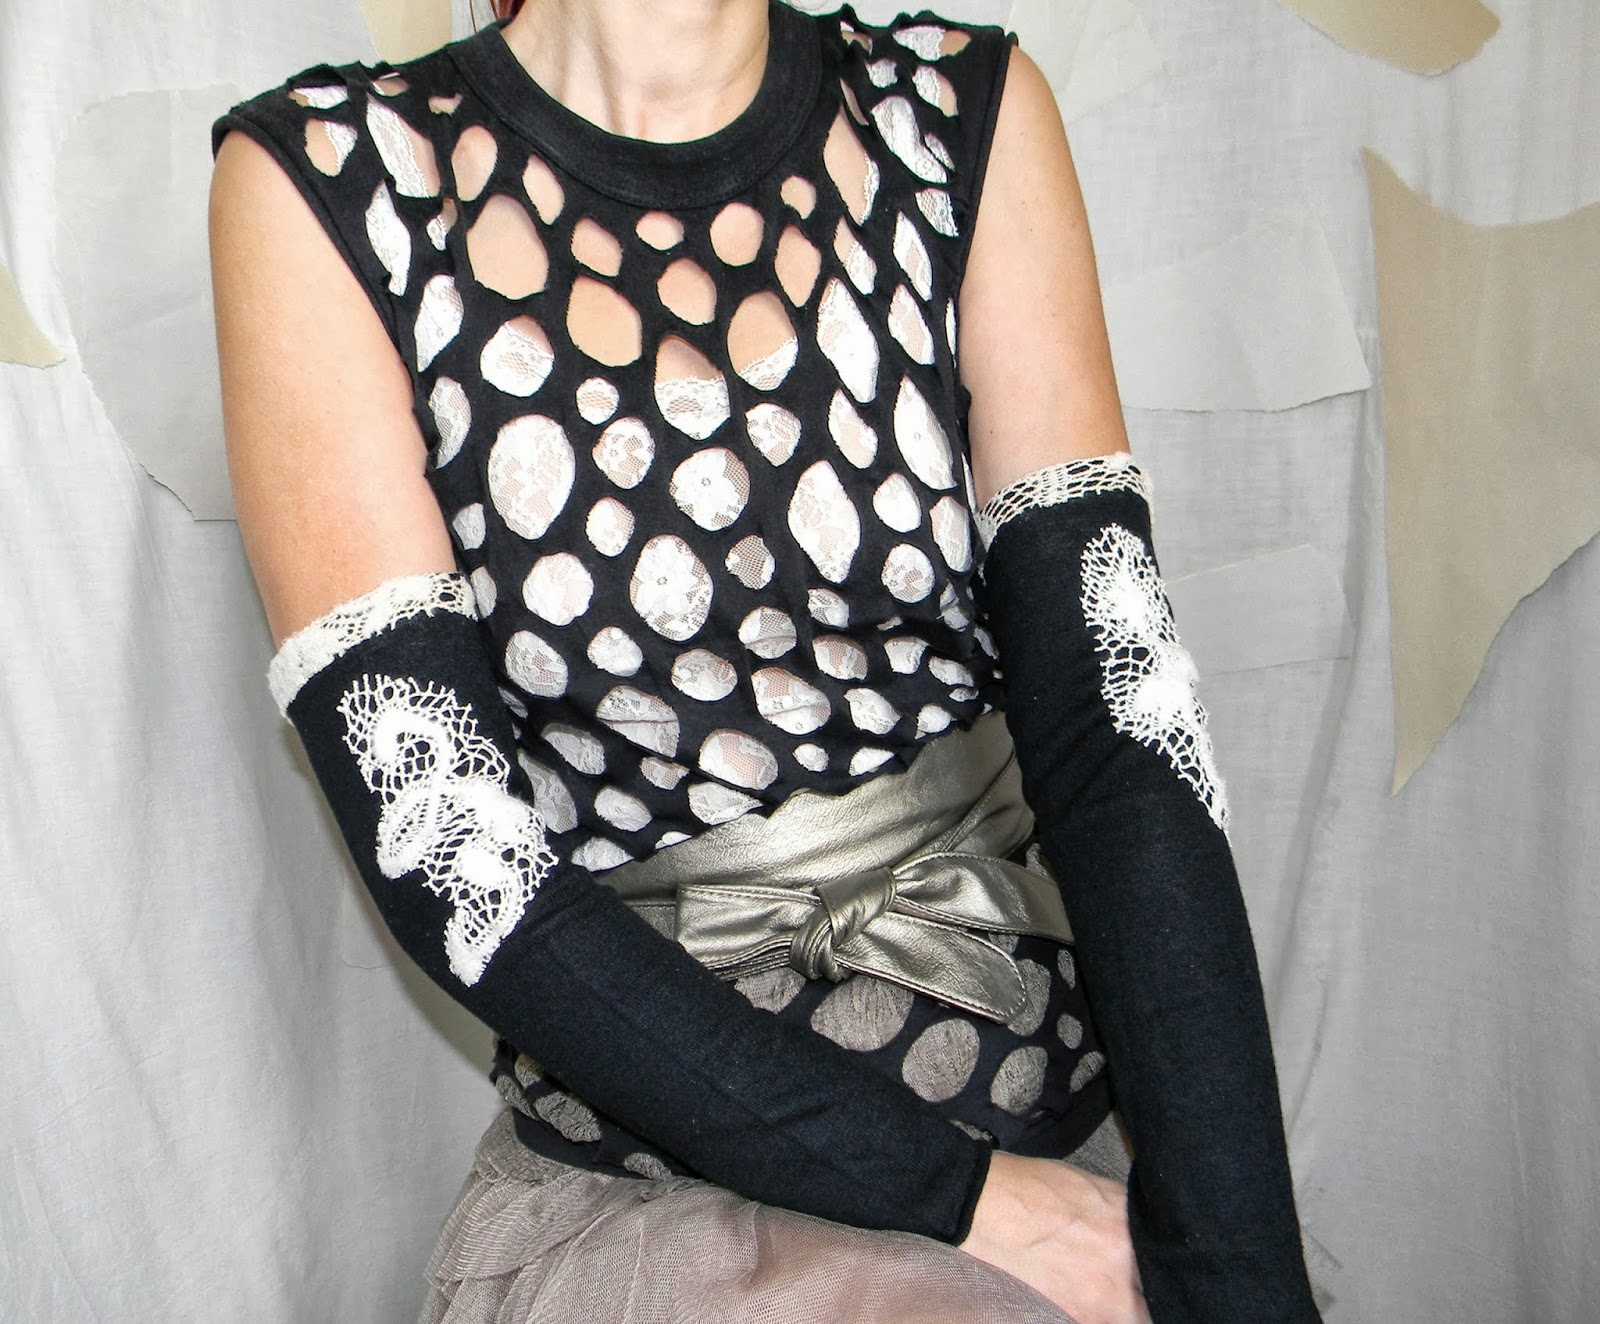 Knit Long Warmers Armlet Black and Ivory Wool Lace Cuffs Gothic Fashion